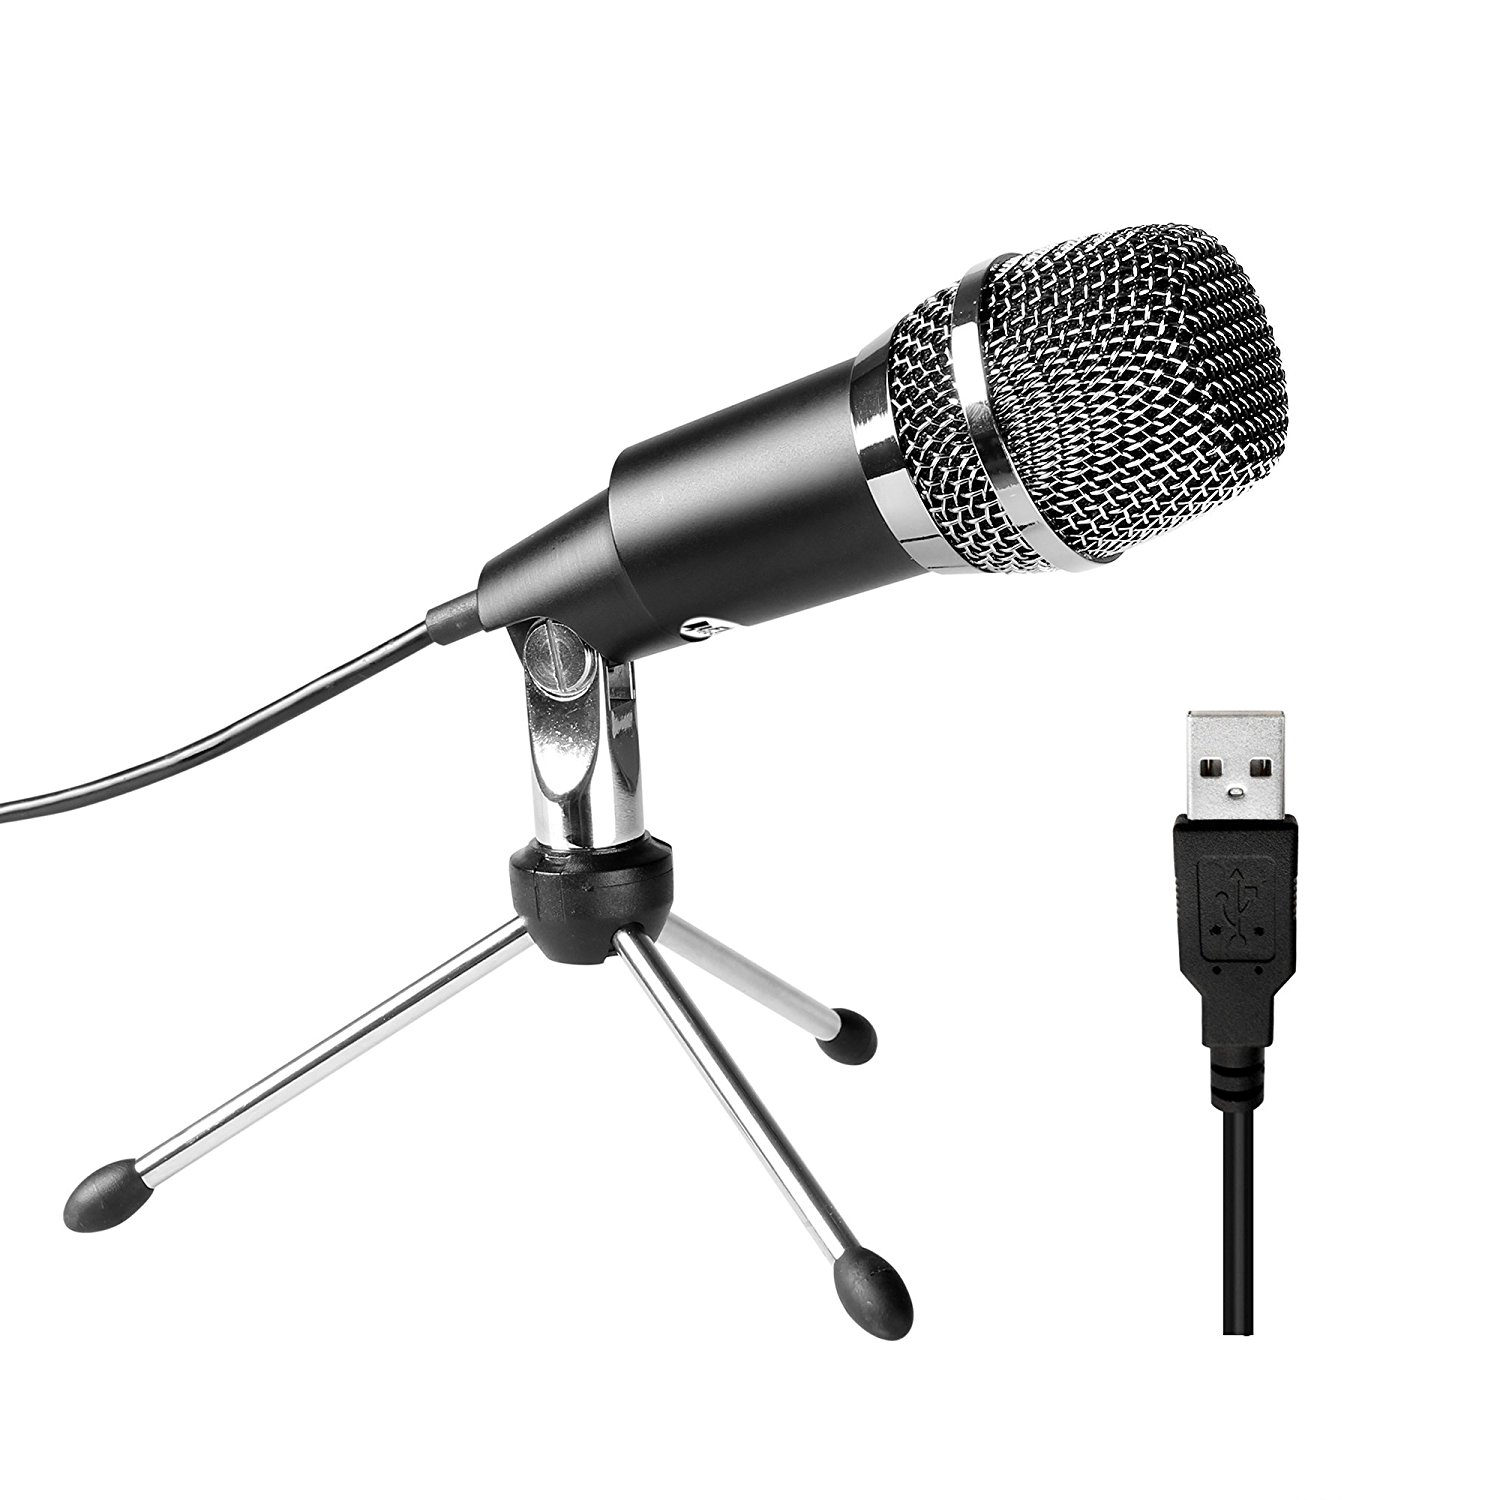 Top 10 Best USB Microphones in 2019